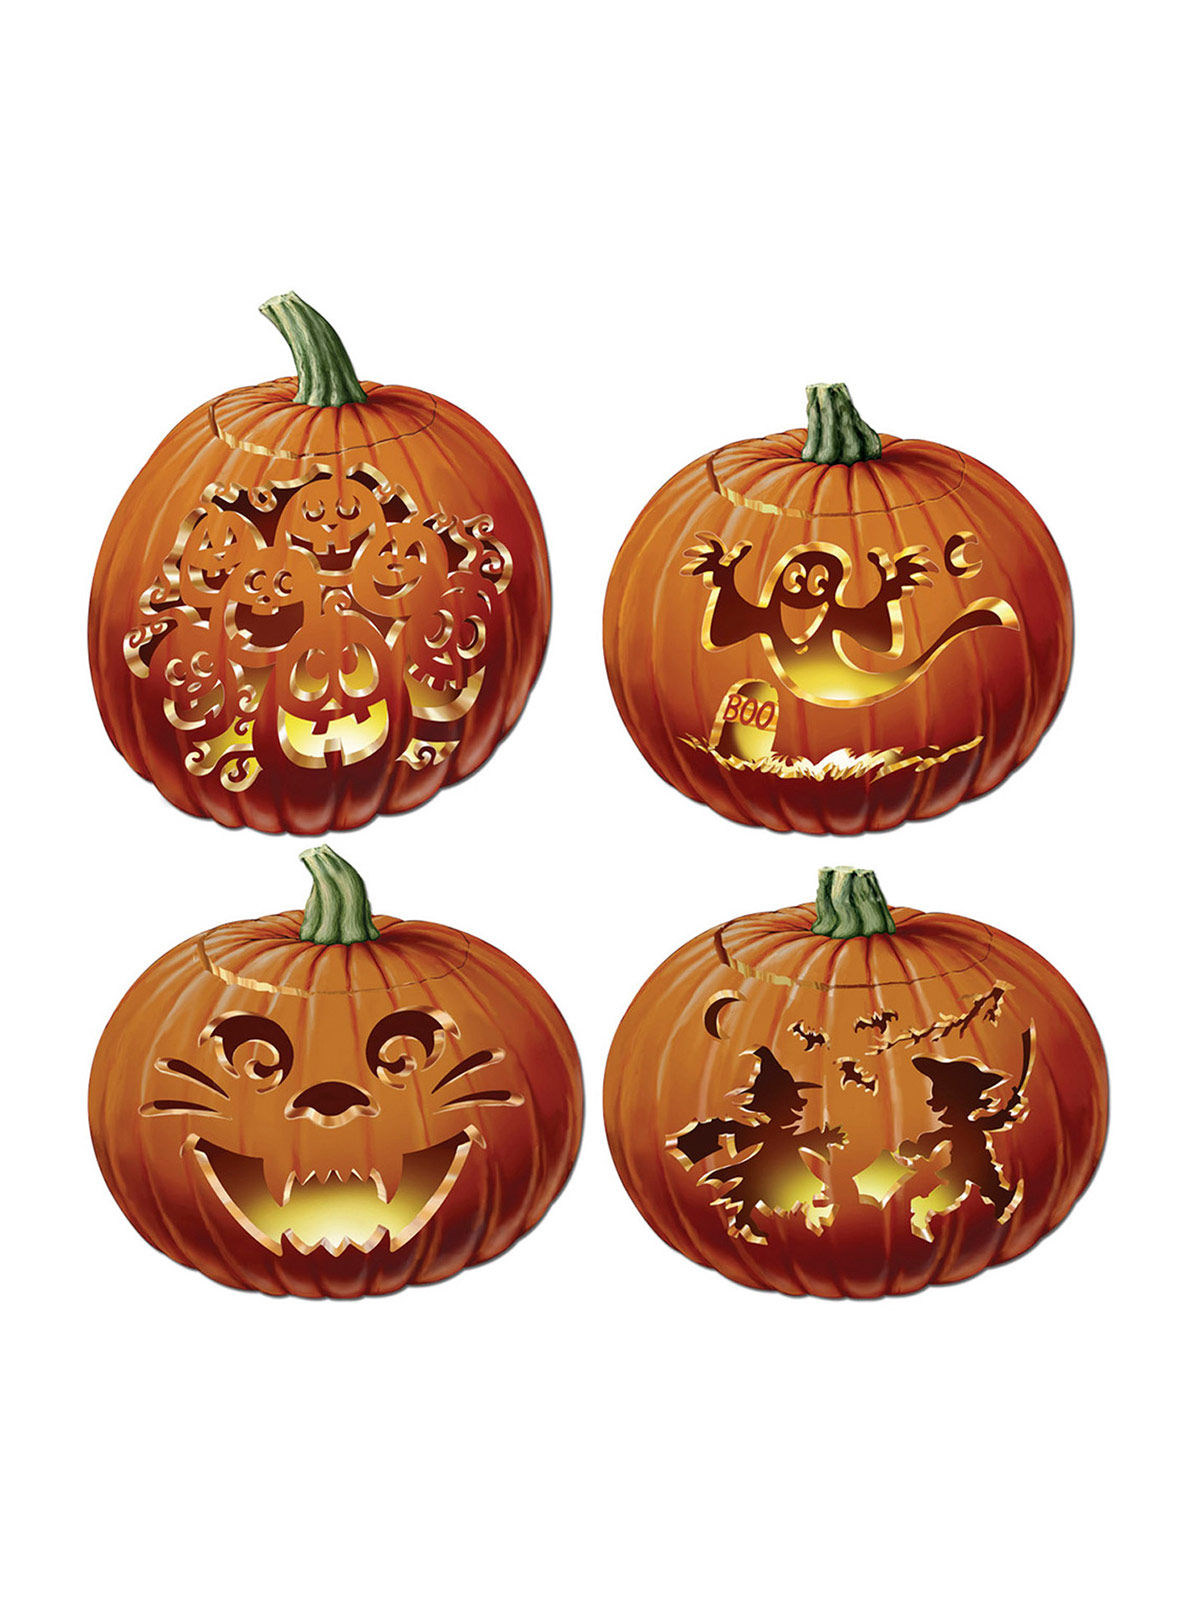 Calabaza Decorada Calabazas Halloween Decoradas Latest Dollus Utc With